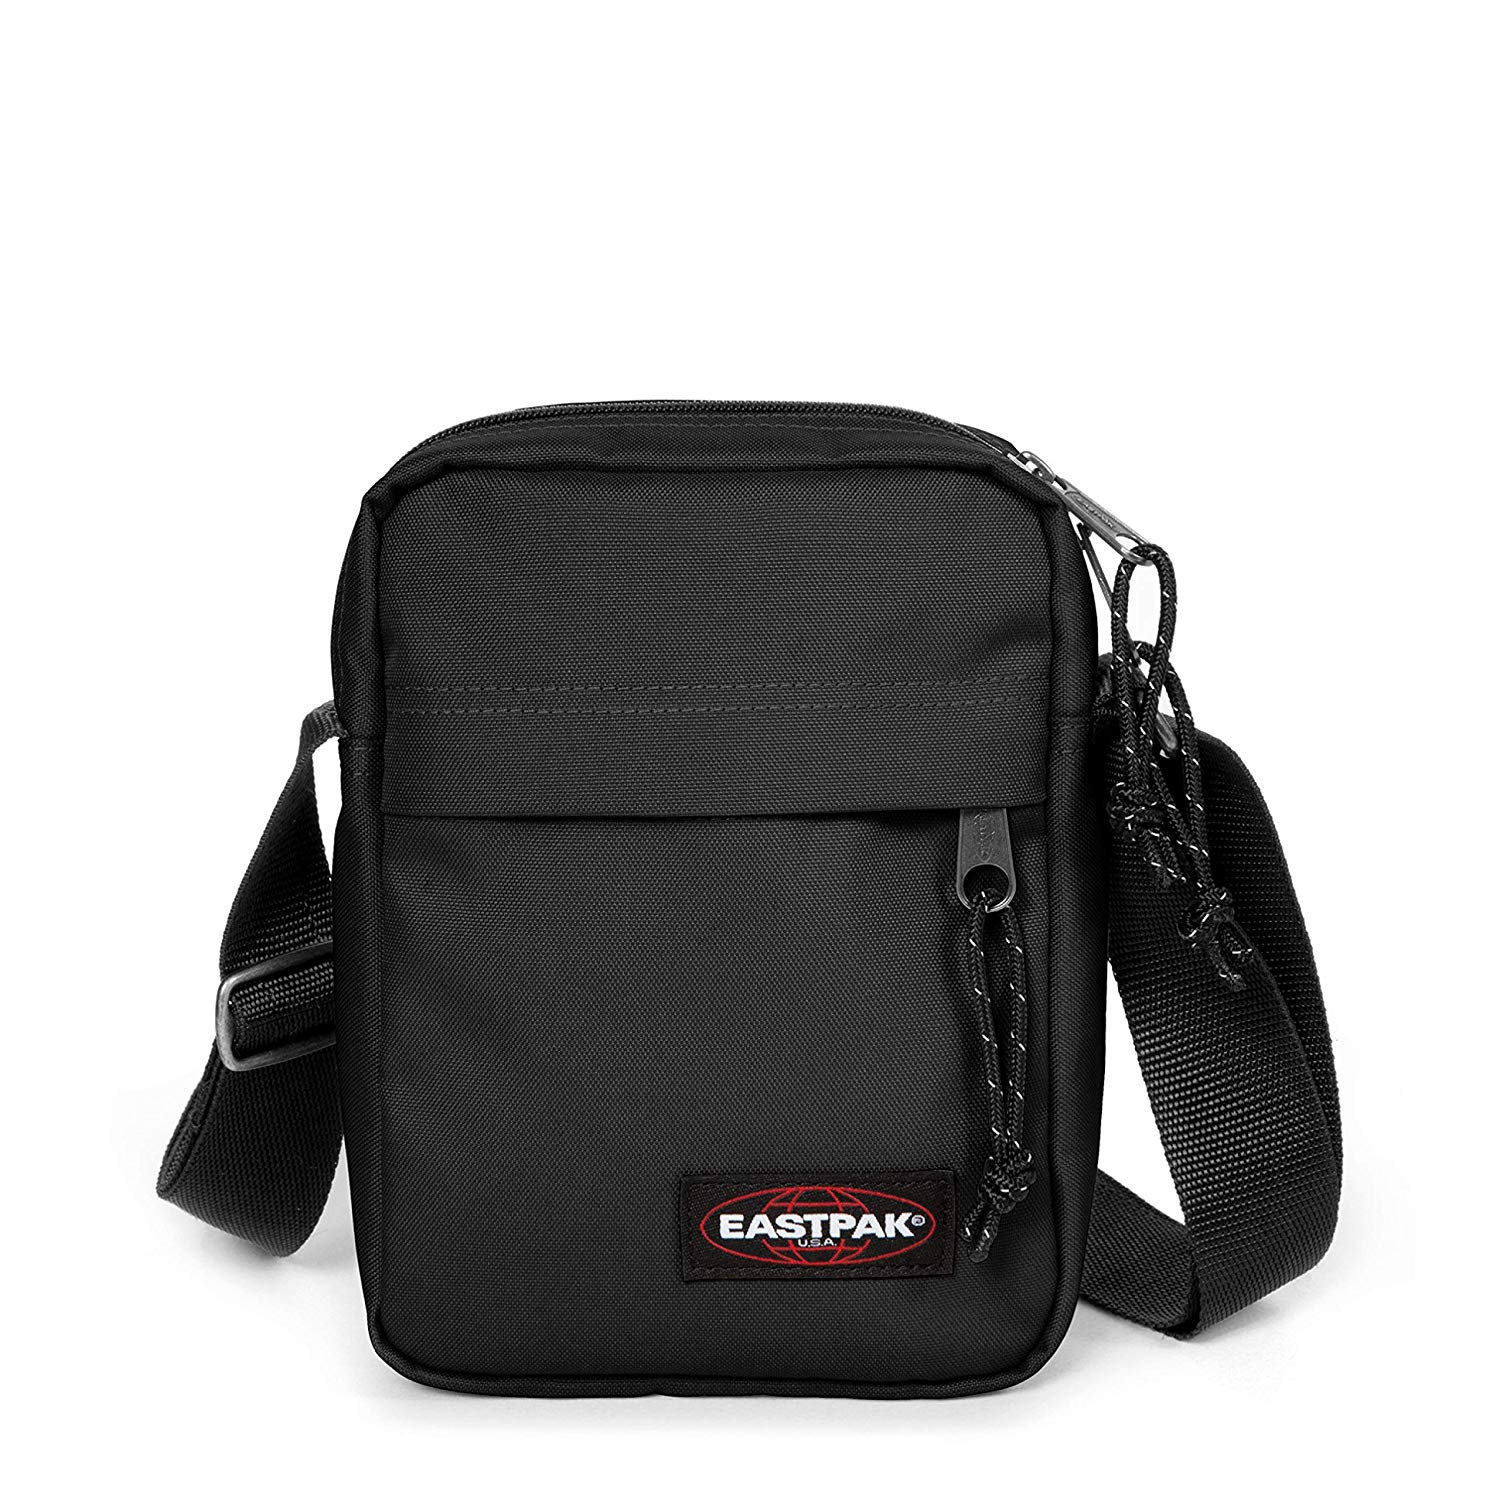 Eastpak Umhängetasche amazon